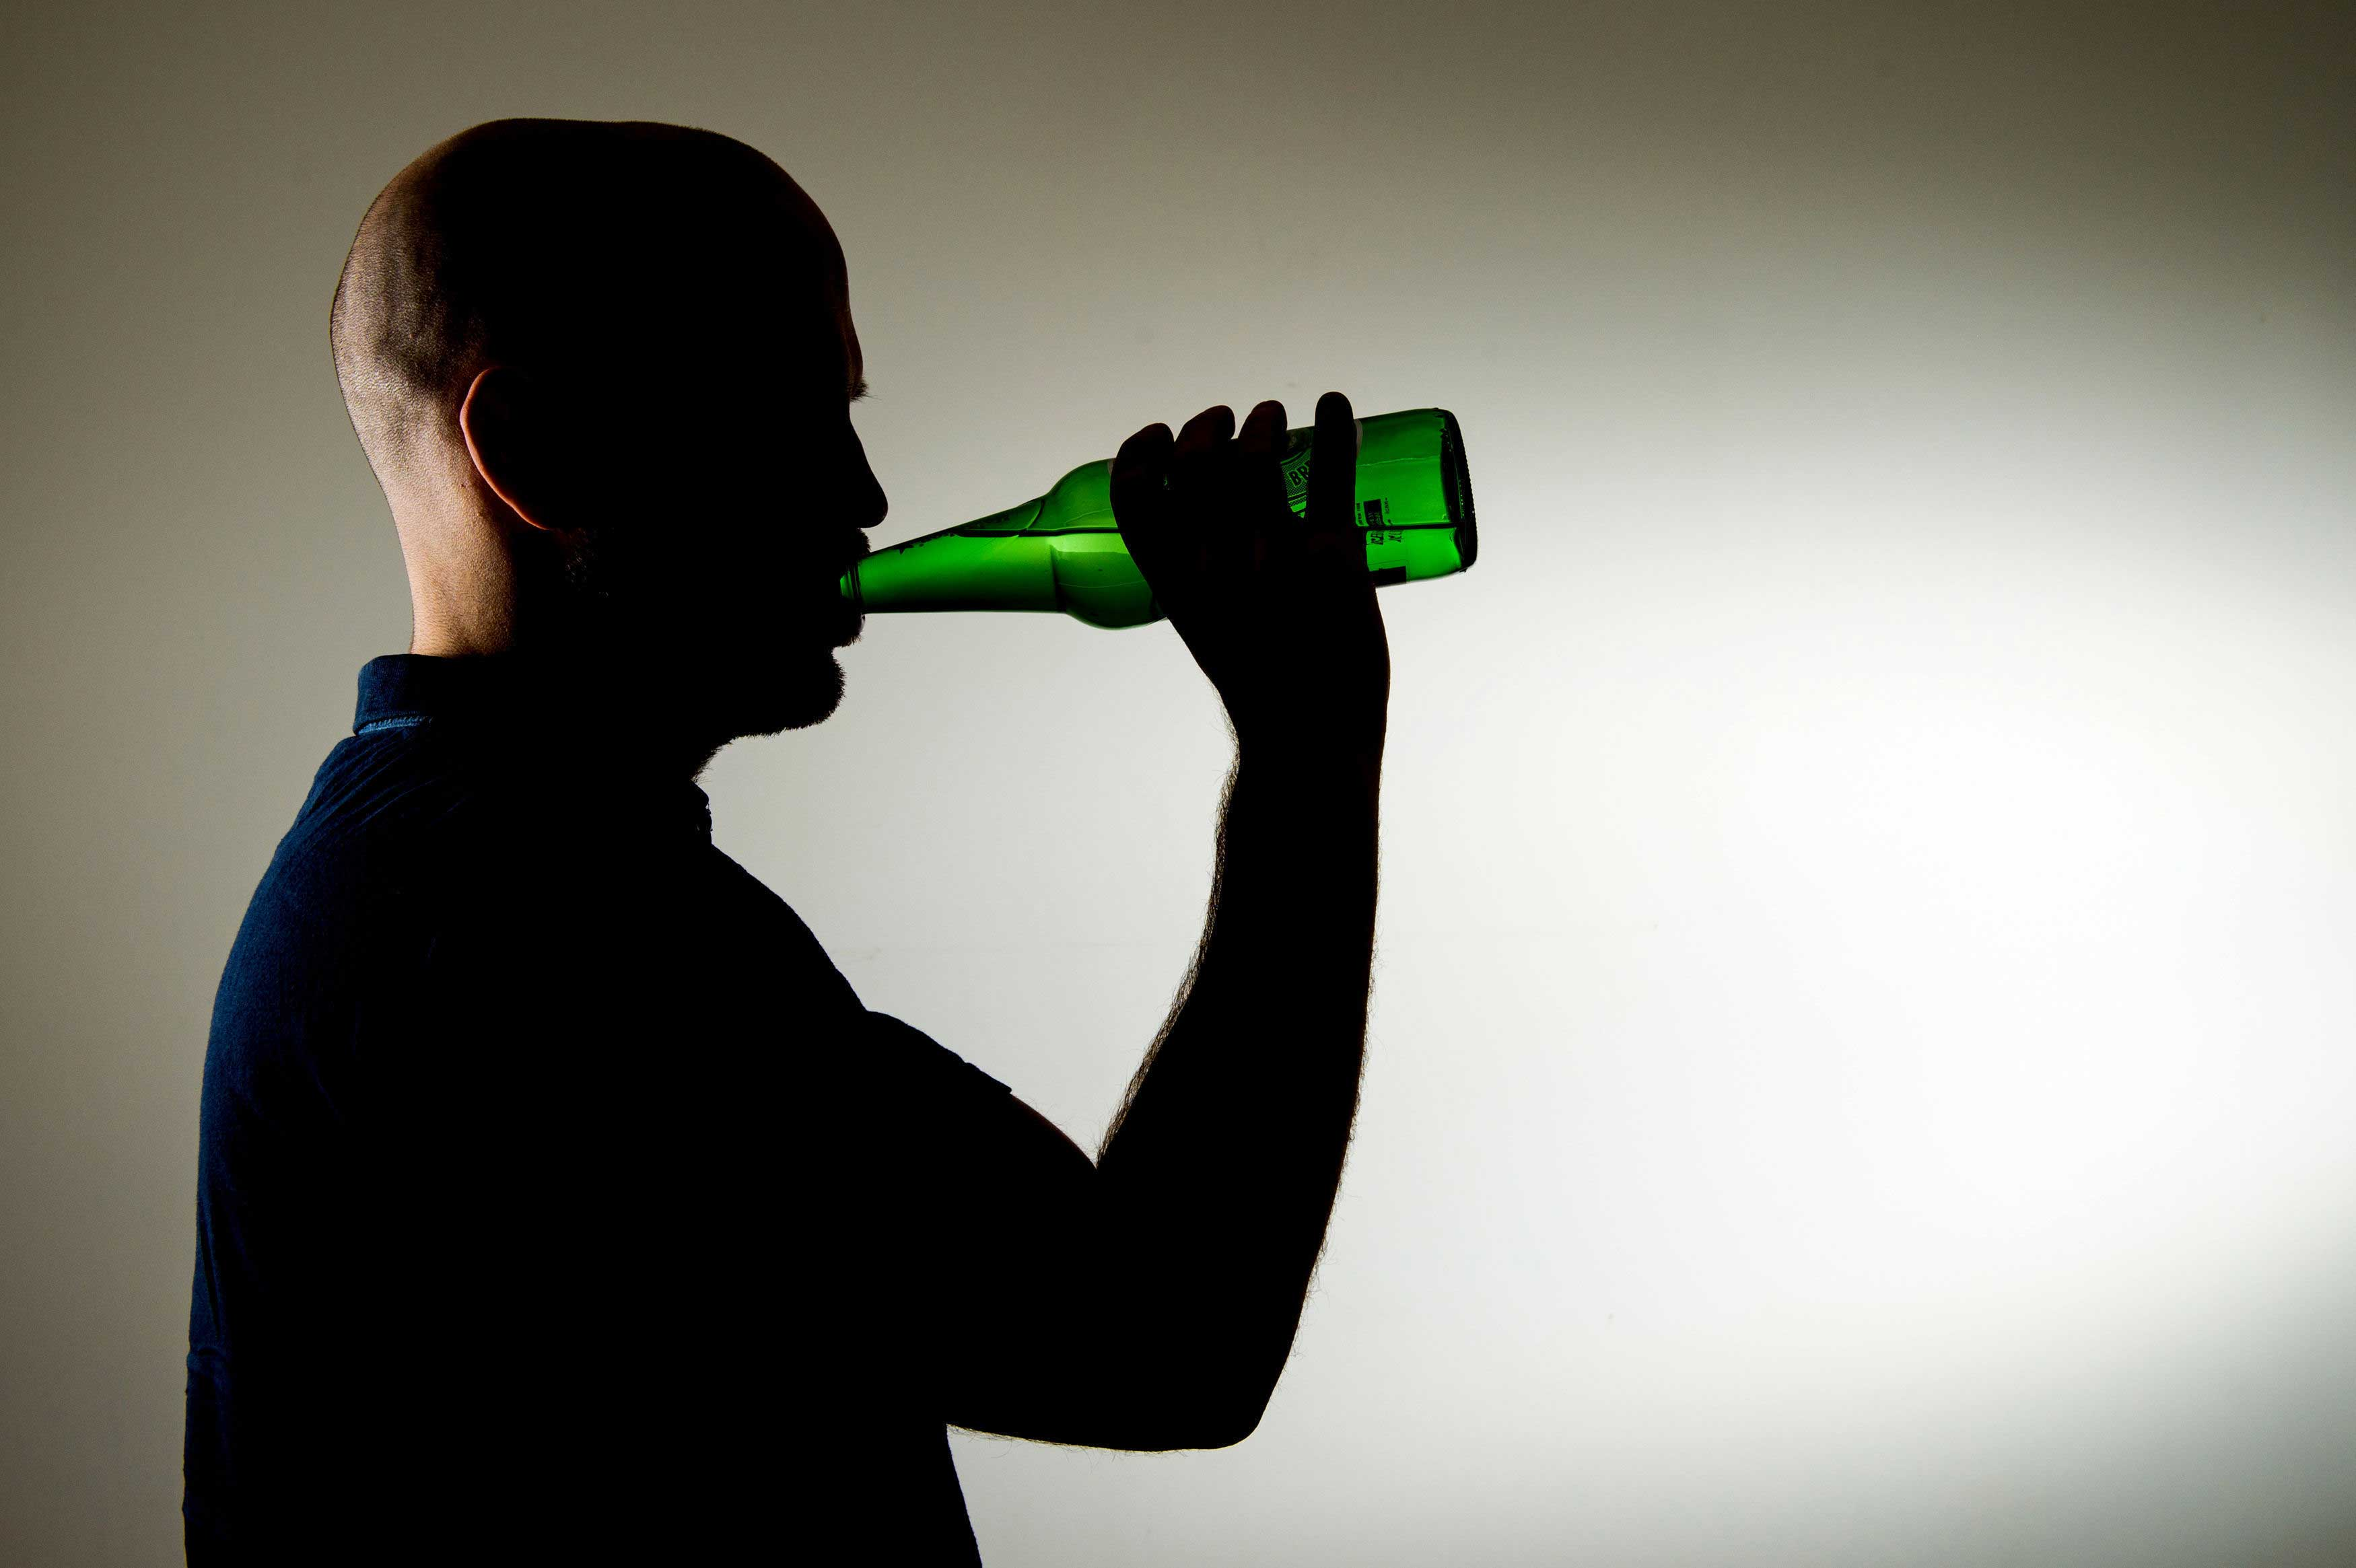 'Moderate' drinking guidelines too loose, study says